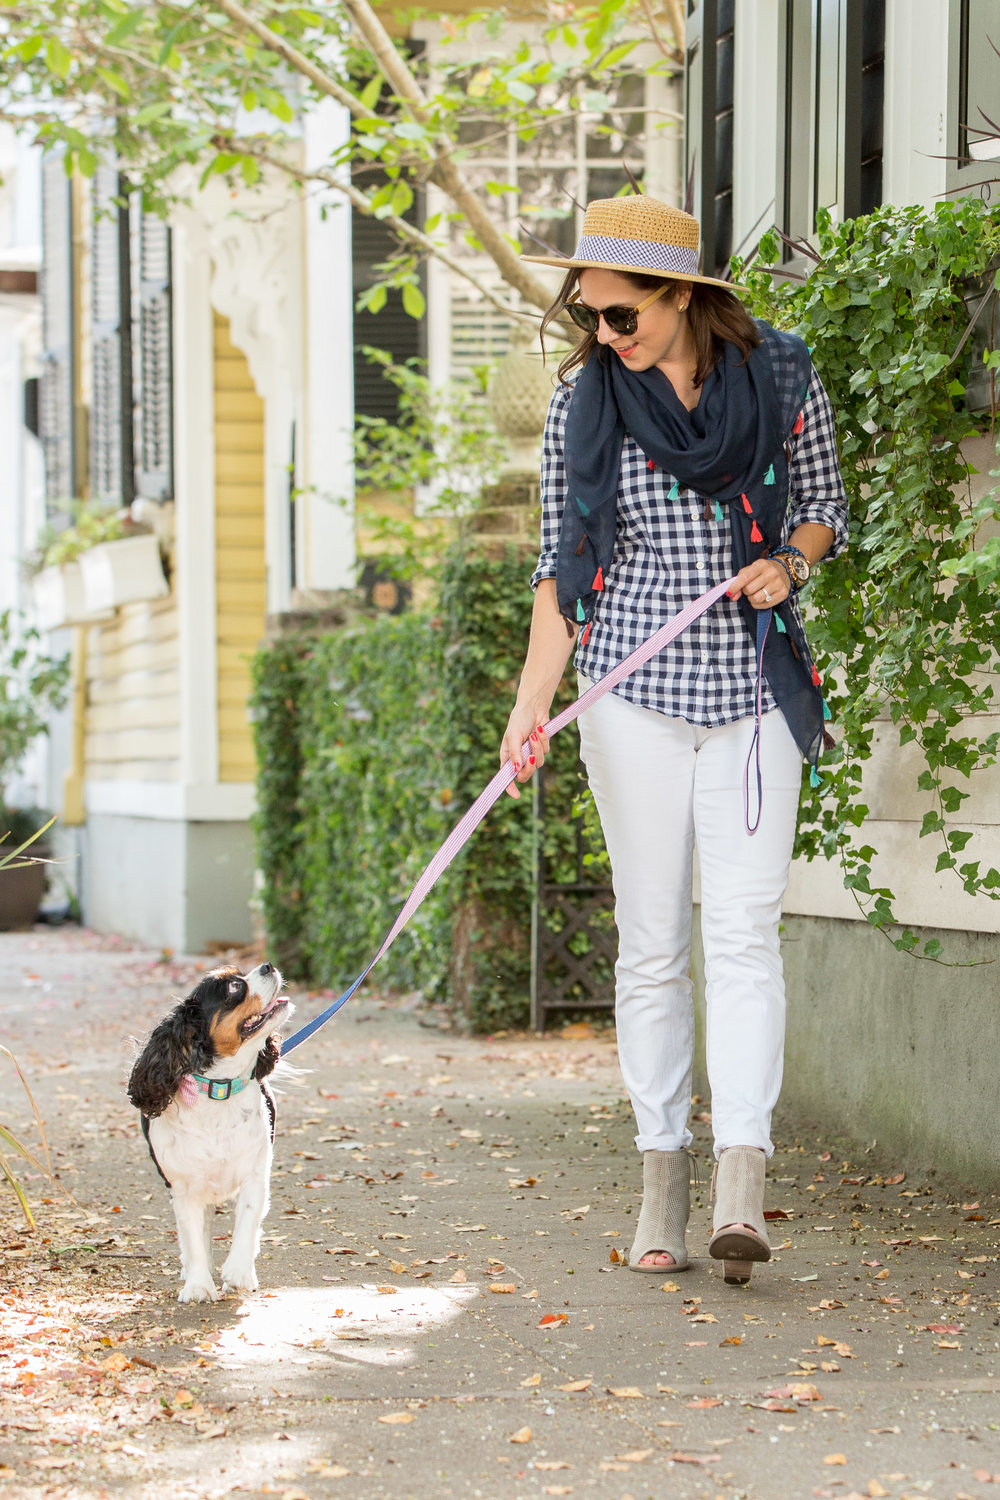 Clifford Pate Photography  || Hat, Scarf, & dog accessories from  Charleston Krewe